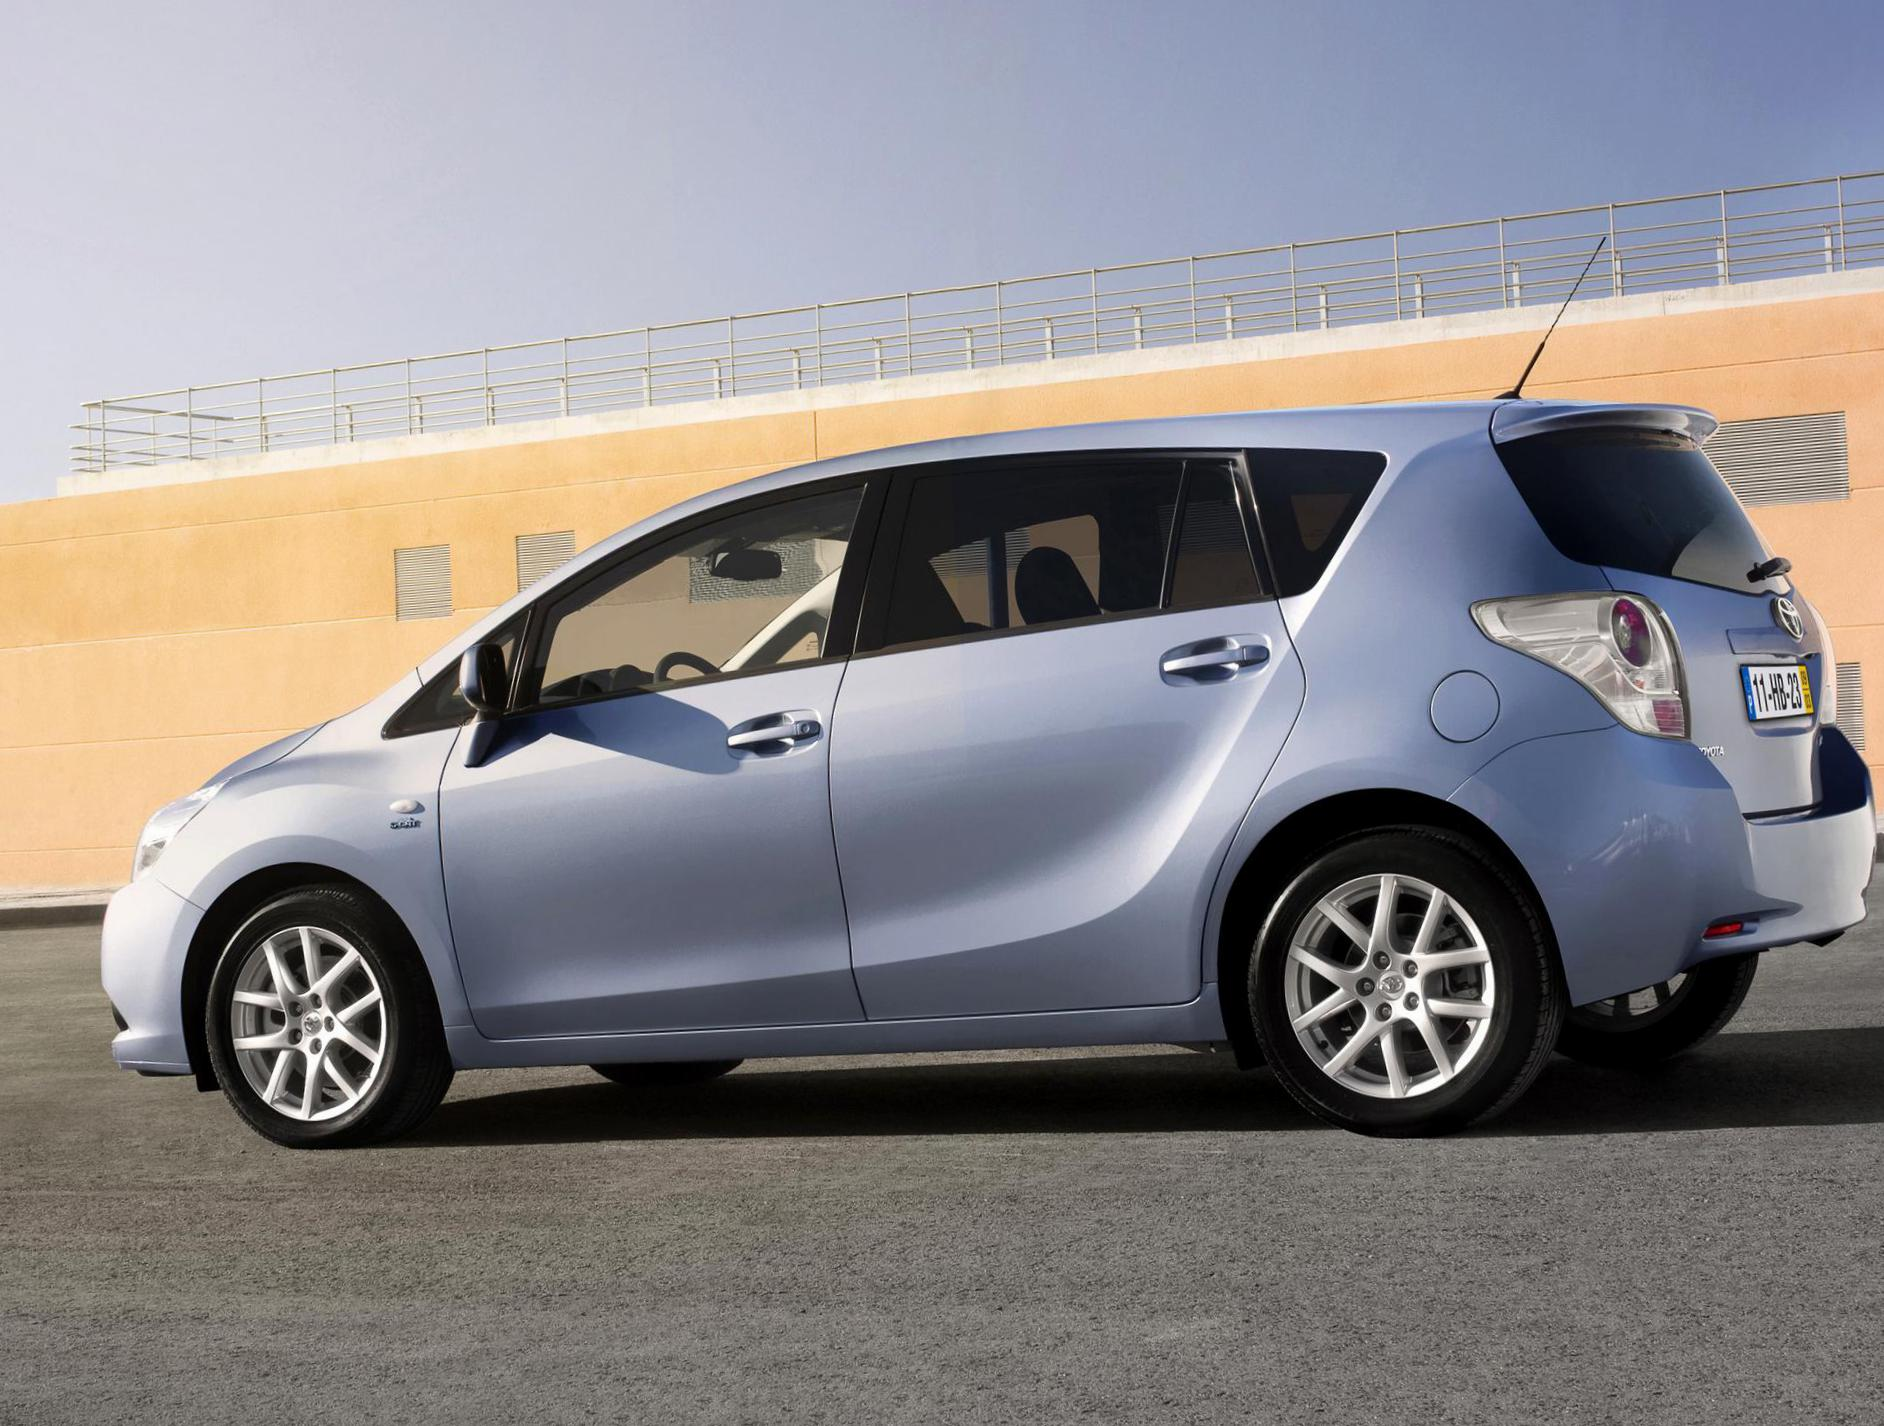 Verso Toyota cost hatchback